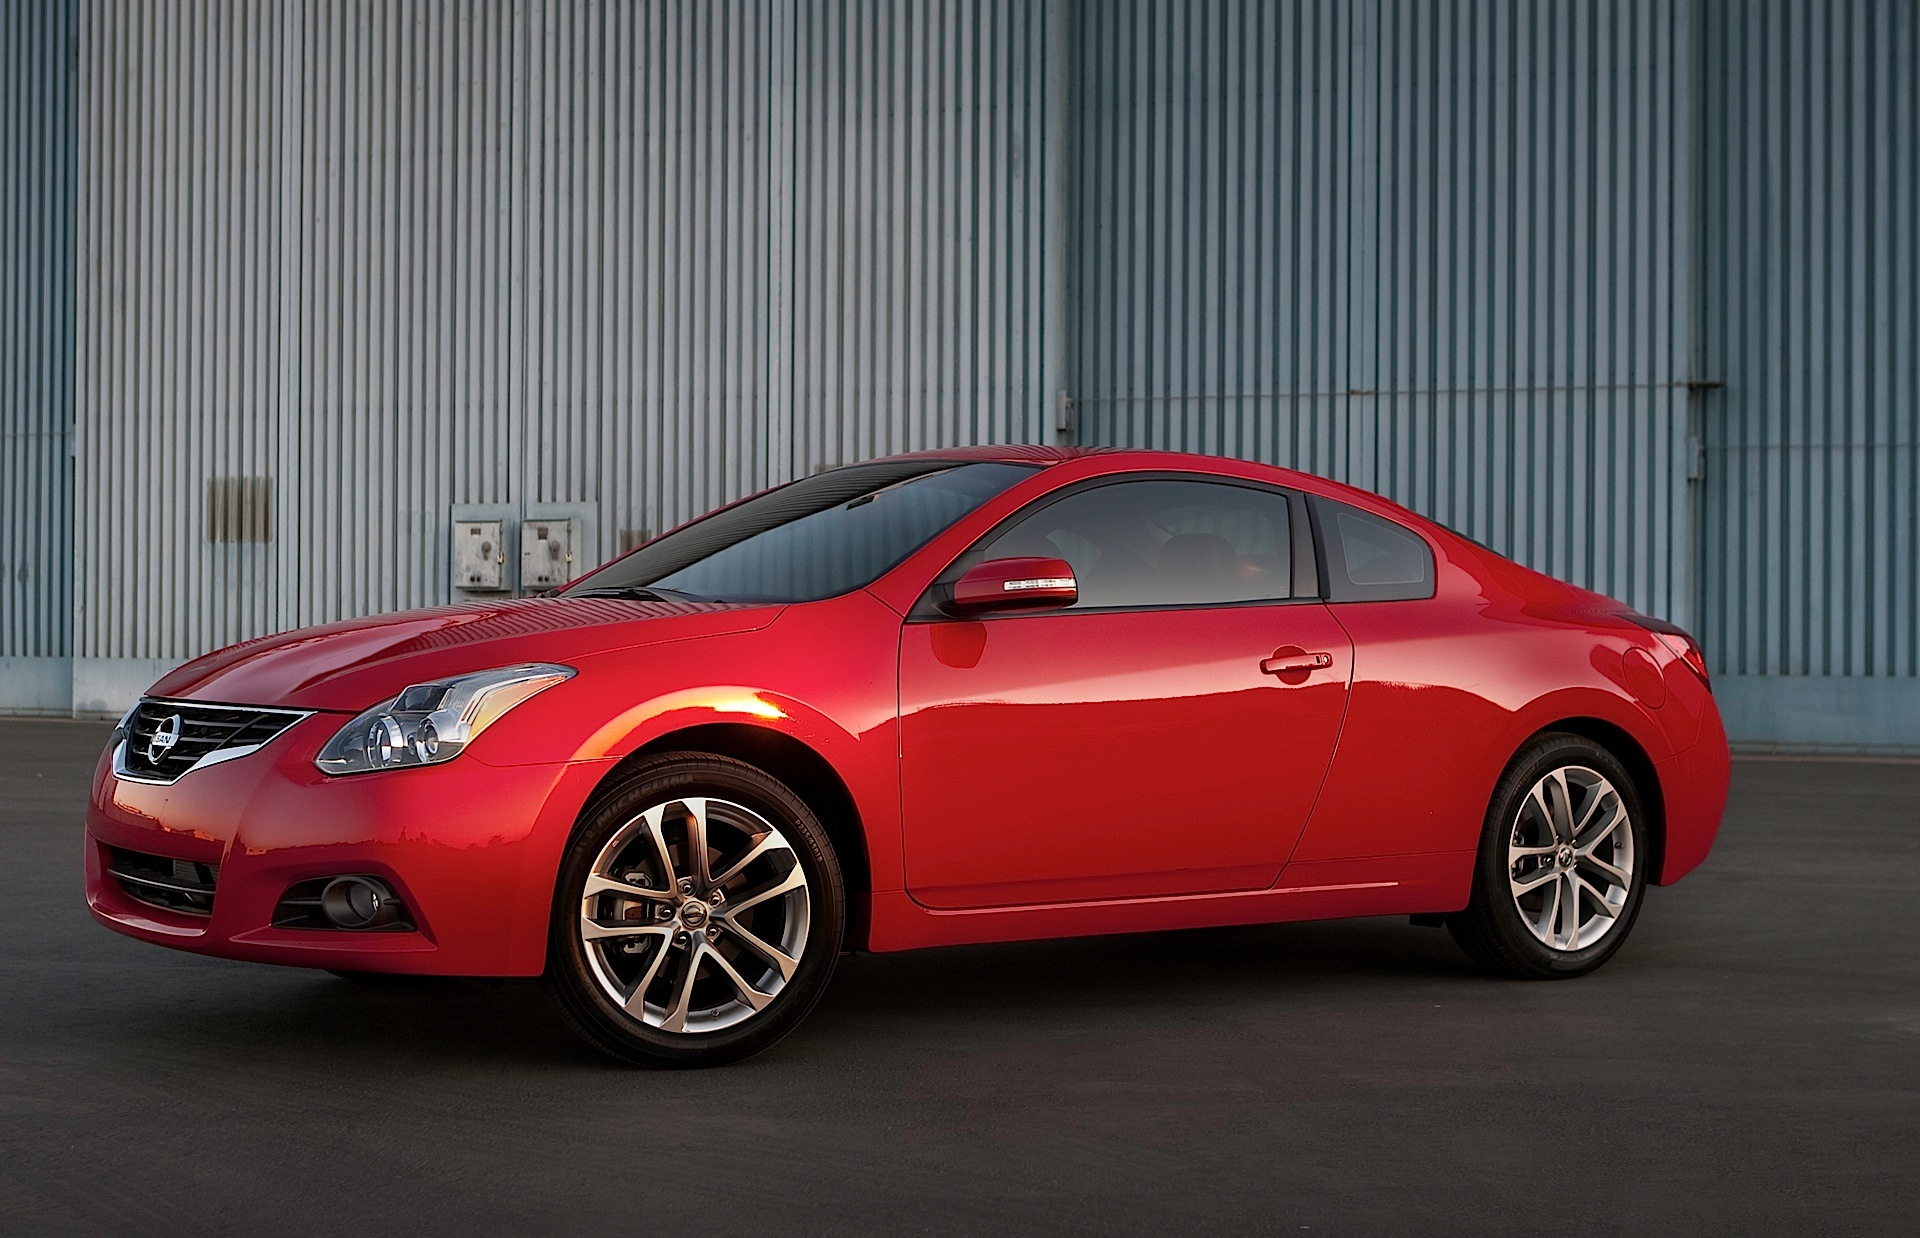 Nissan Altima Coupe Specs Photos 2012 2013 2014 2015 2016